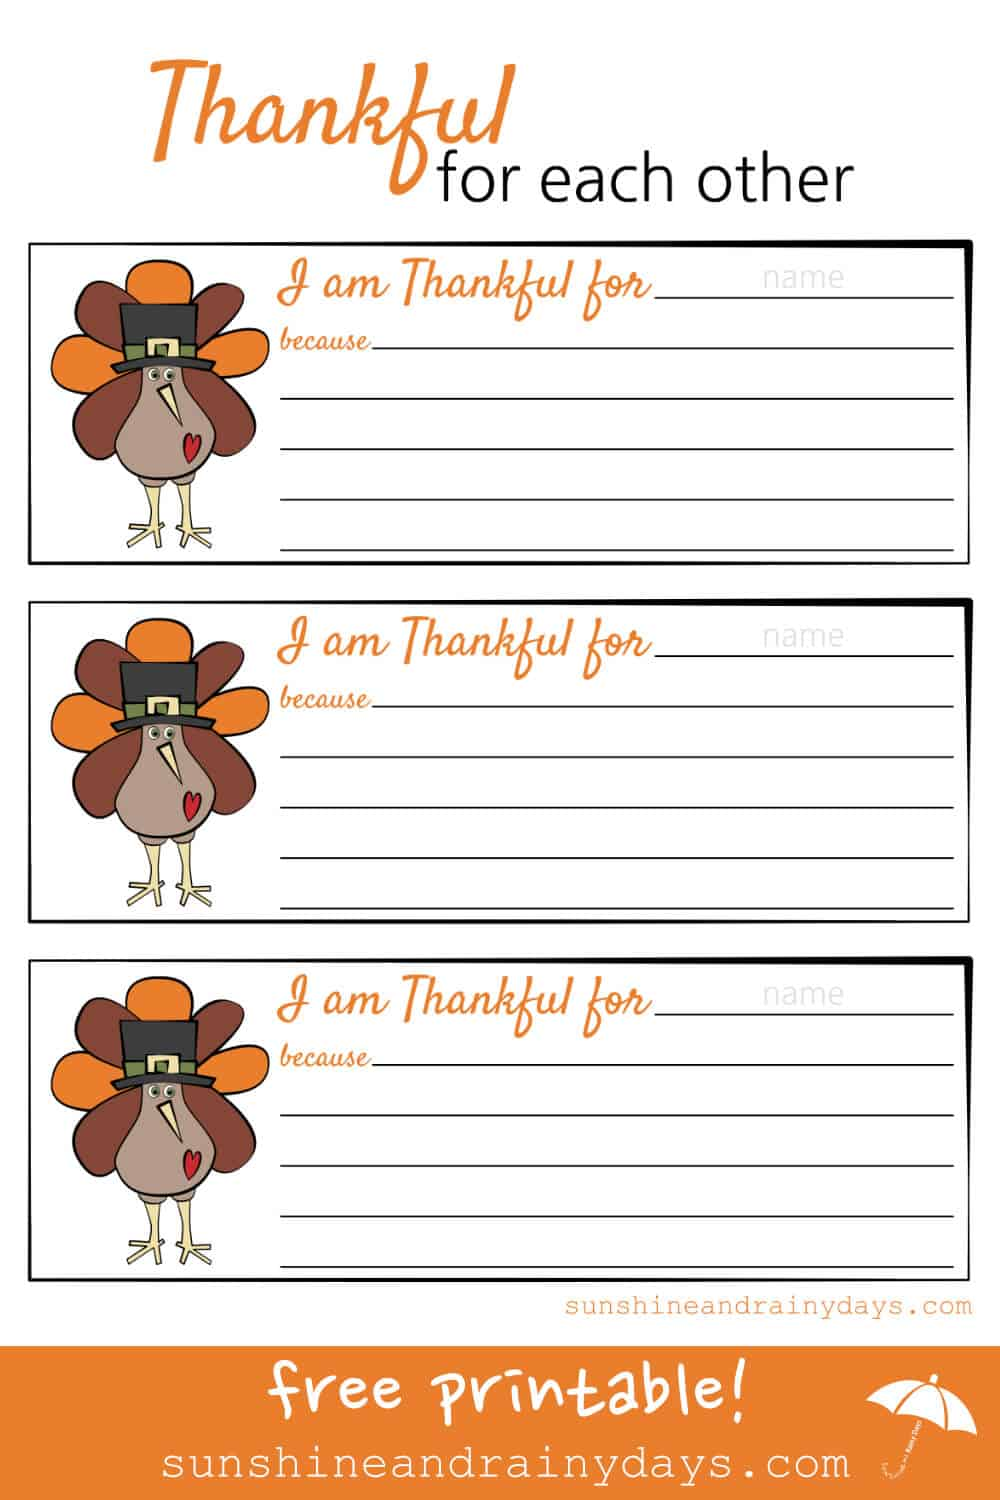 Thanksgiving is the perfect time to express our gratitude for each other. We've made it easy with our Thankful For Each Other Printable!